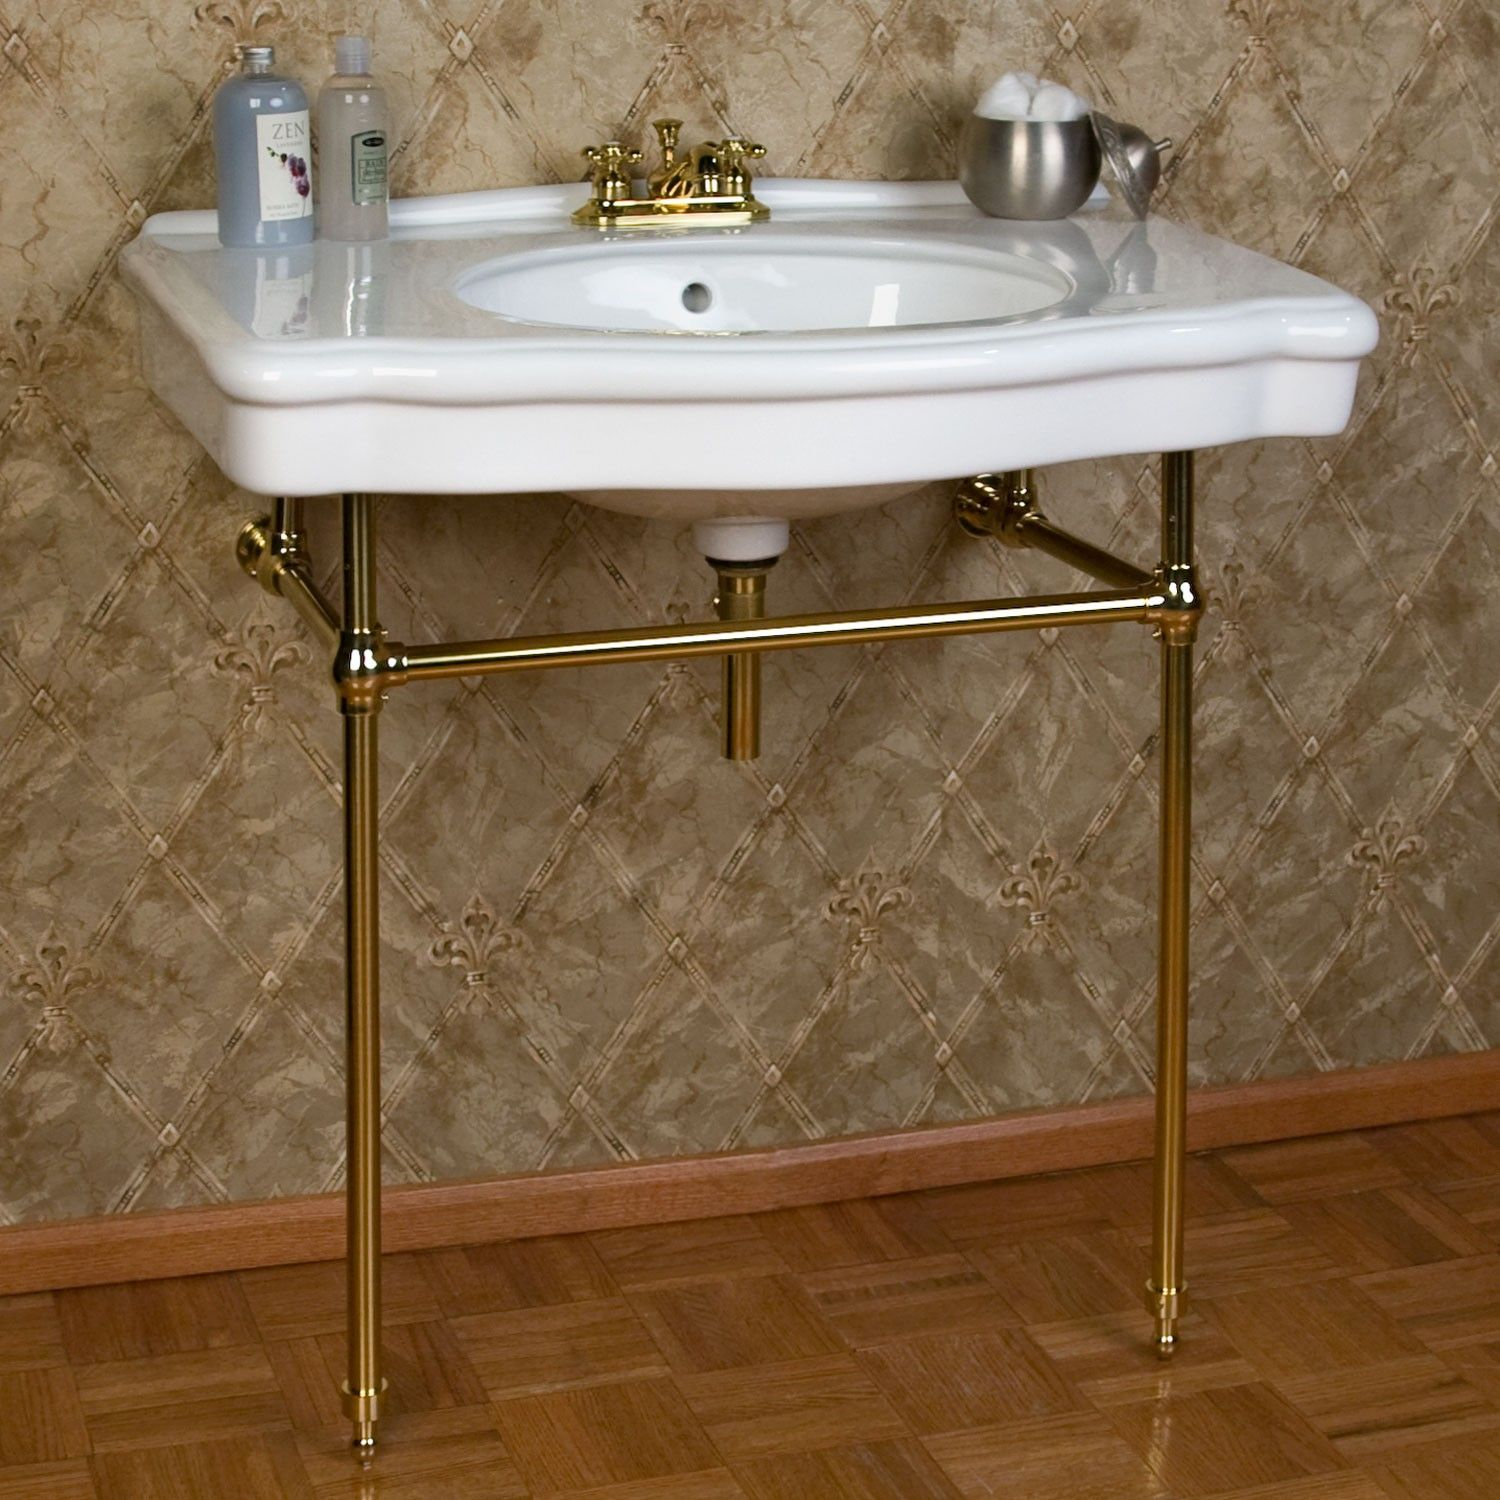 Pennington Porcelain Console Sink with Brass Stand | Consoles, Sinks ... for Bathroom Basin Stands  303mzq